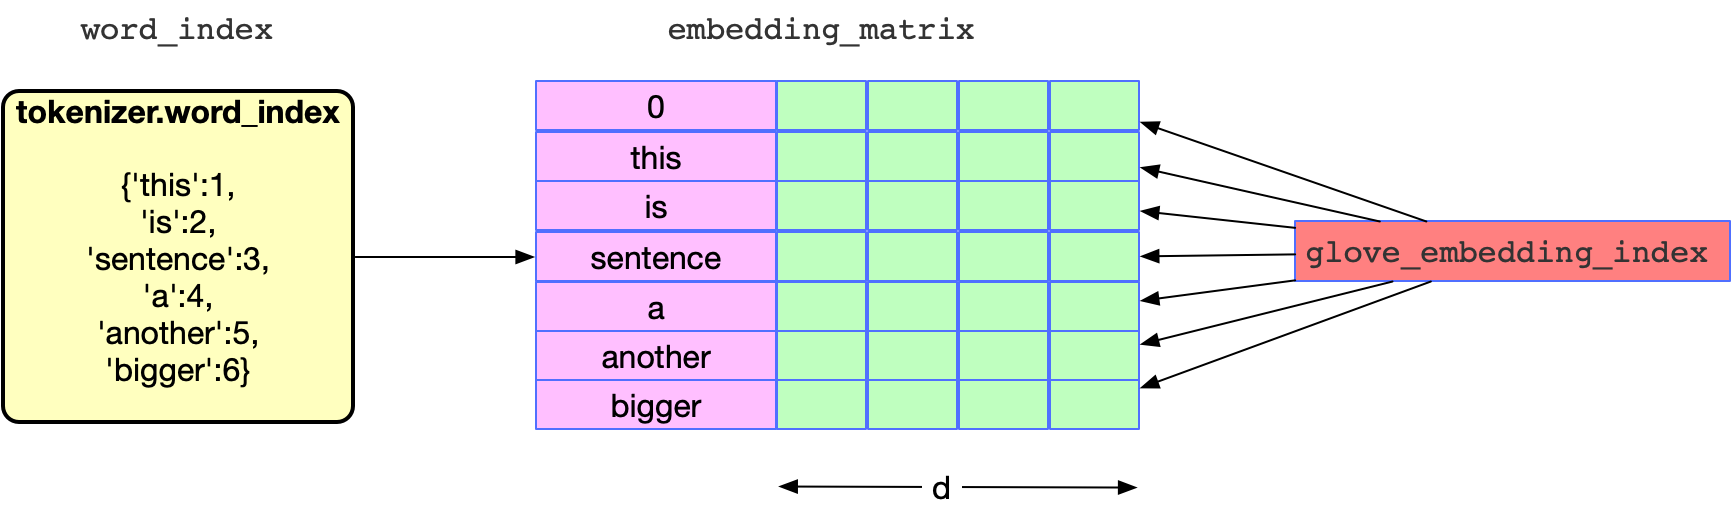 NLP Learning Series: Part 1 - Text Preprocessing Methods for Deep